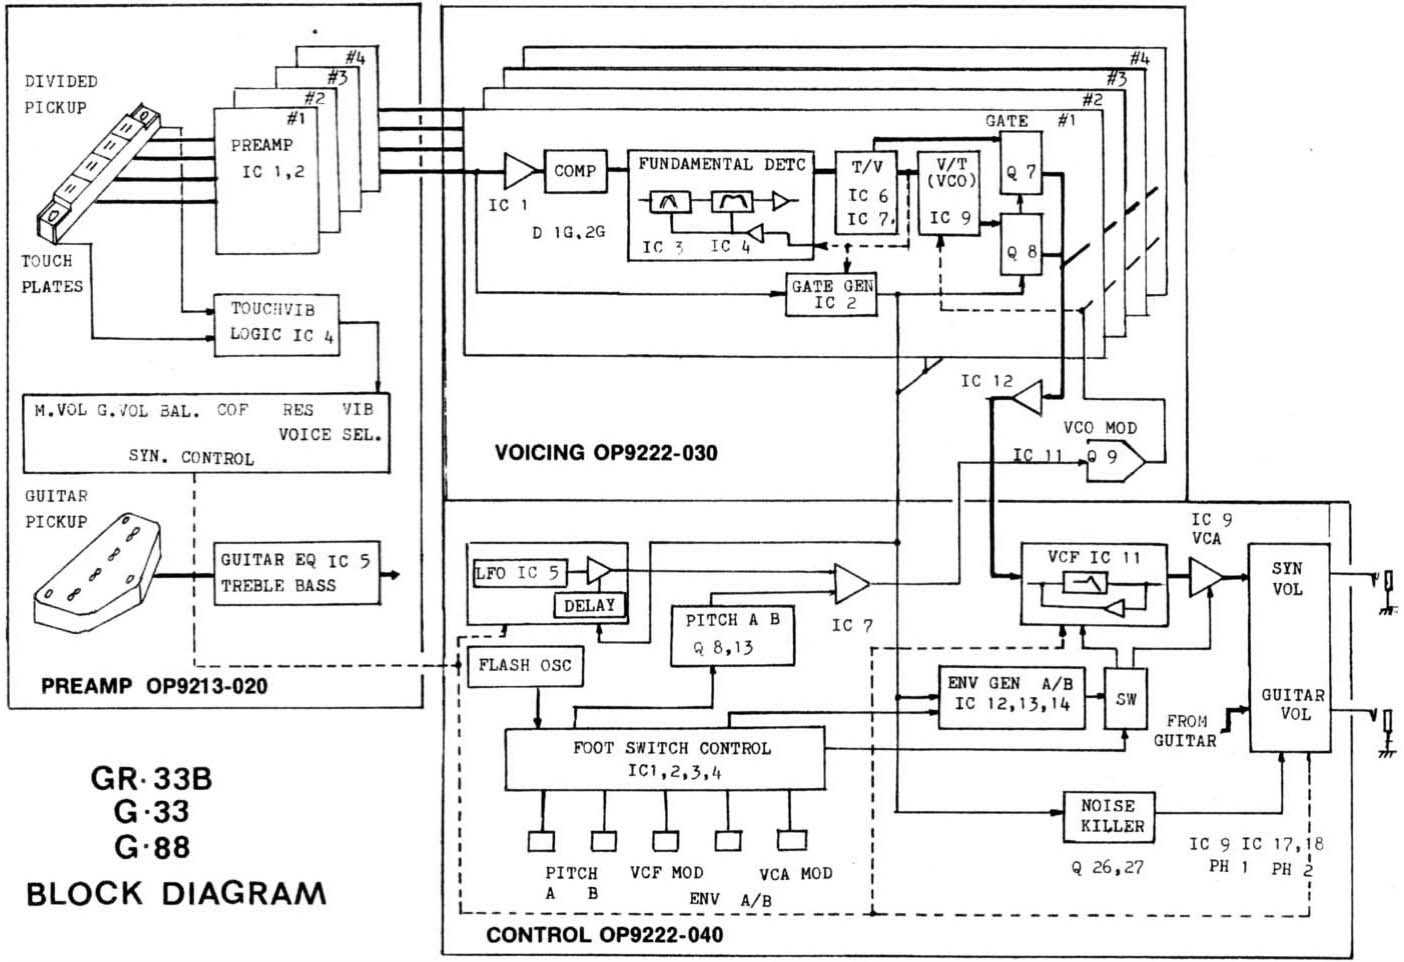 gk 3 divided pick up wiring schematic